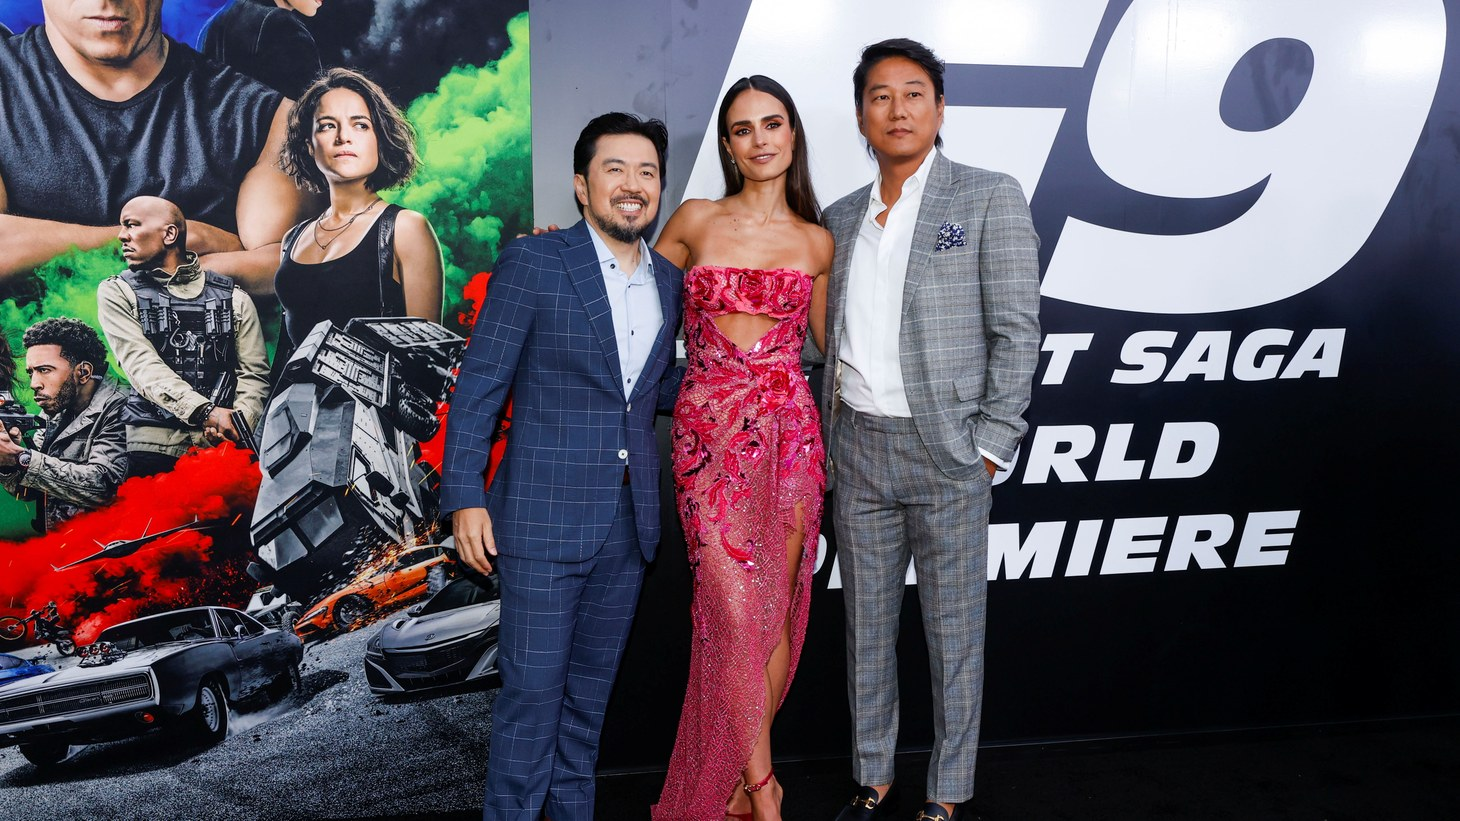 """Cast members Jordana Brewster and Sung Kang pose with director Justin Lin as they attend the world premiere of the movie """"F9: The Fast Saga"""" at TCL Chinese Theatre in Los Angeles, California, U.S., June 18, 2021."""